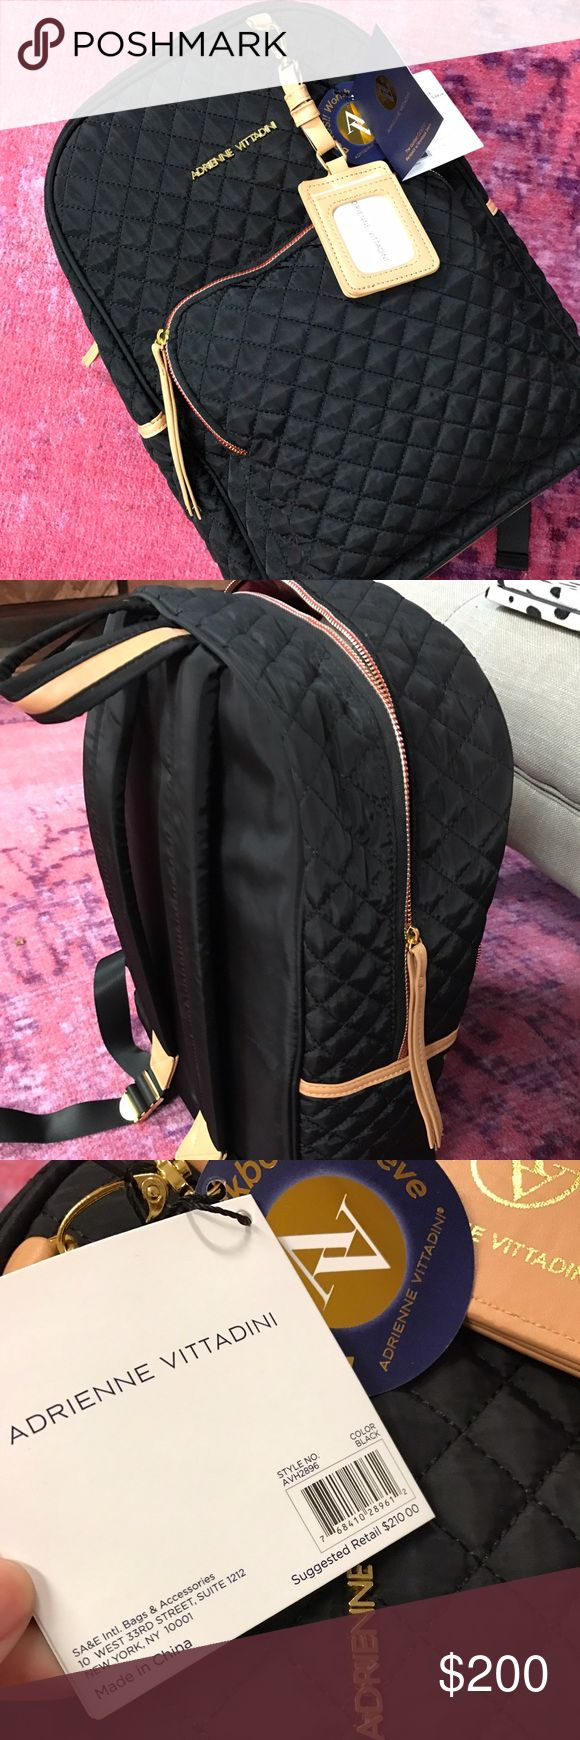 NWT Adrienne Vittadini Black Travel Backpack Perfect for work with a sleek laptop slot or a perfect travel backpack. Super soft. Chic gold zippers and red luxurious accents. NWT MSRP $210 Adrienne Vittadini Bags Backpacks